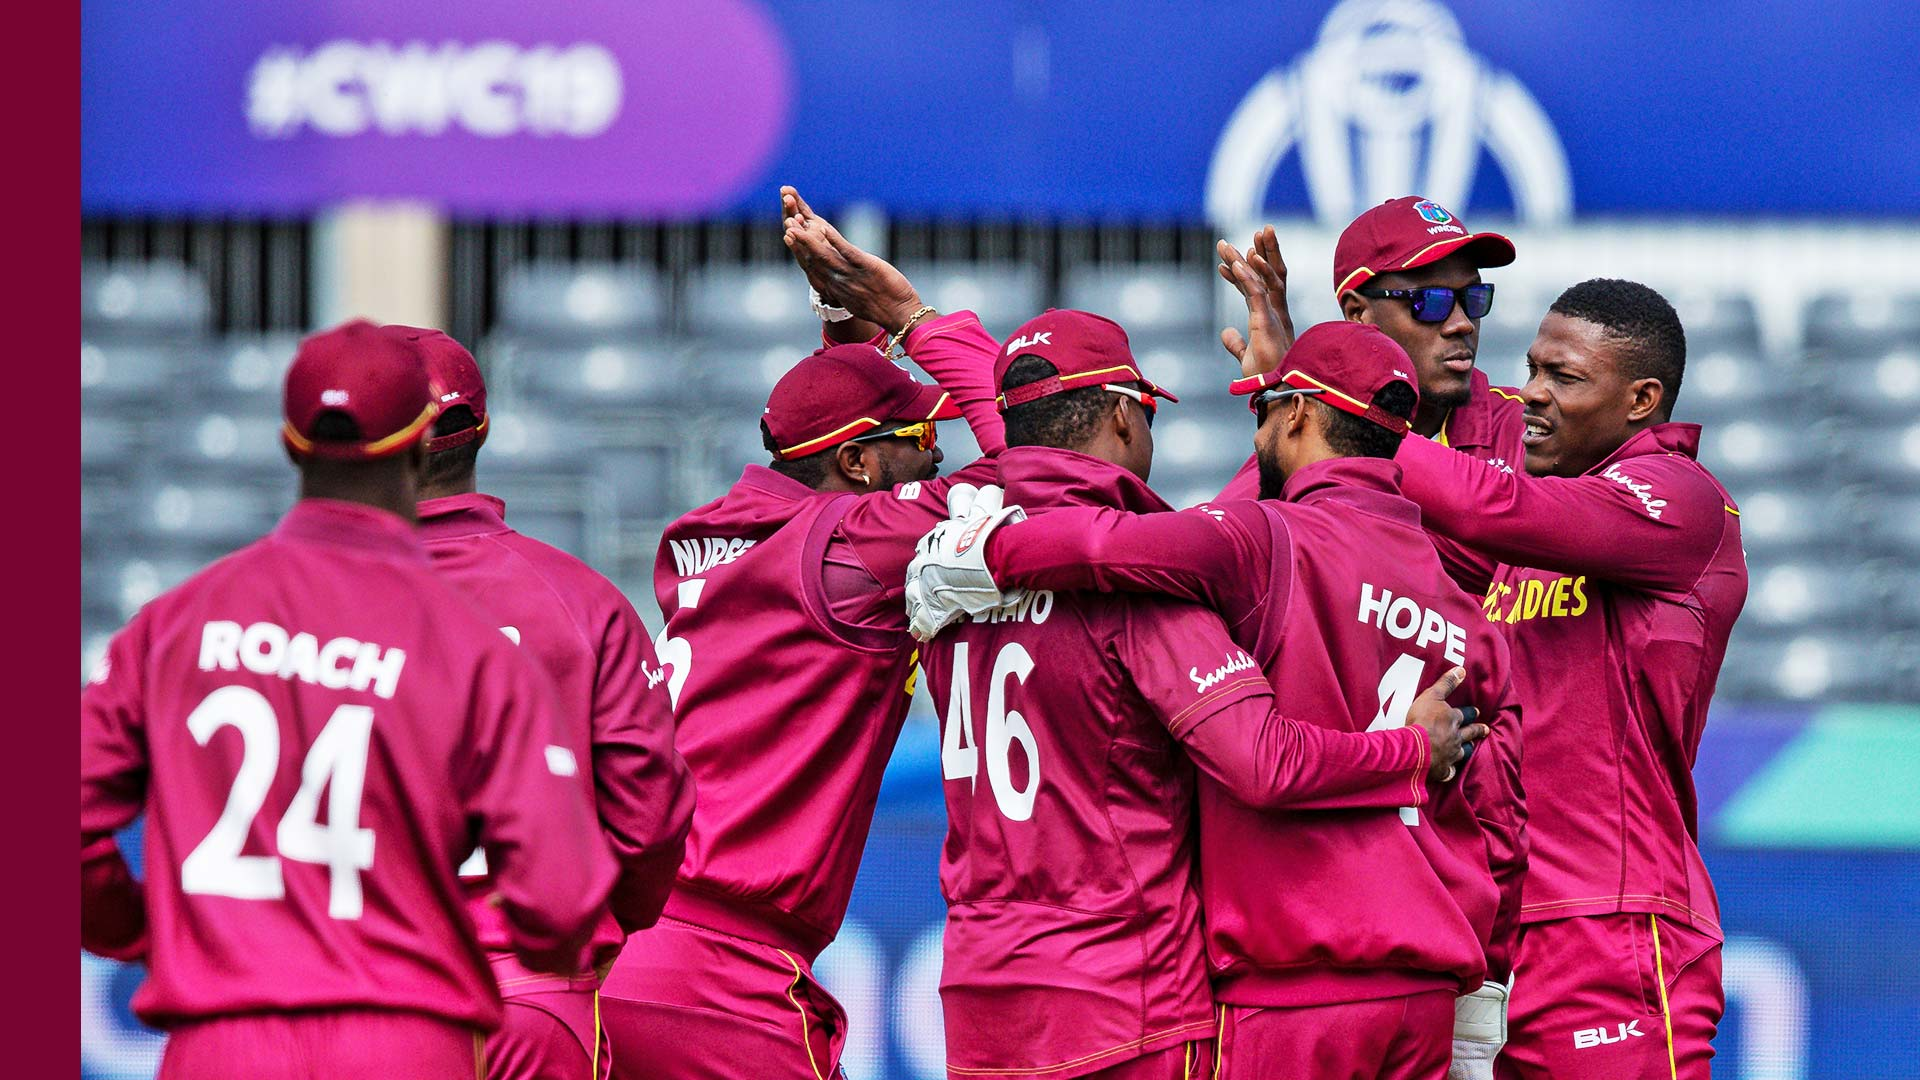 West Indies drop two straight games at Cricket World Cup